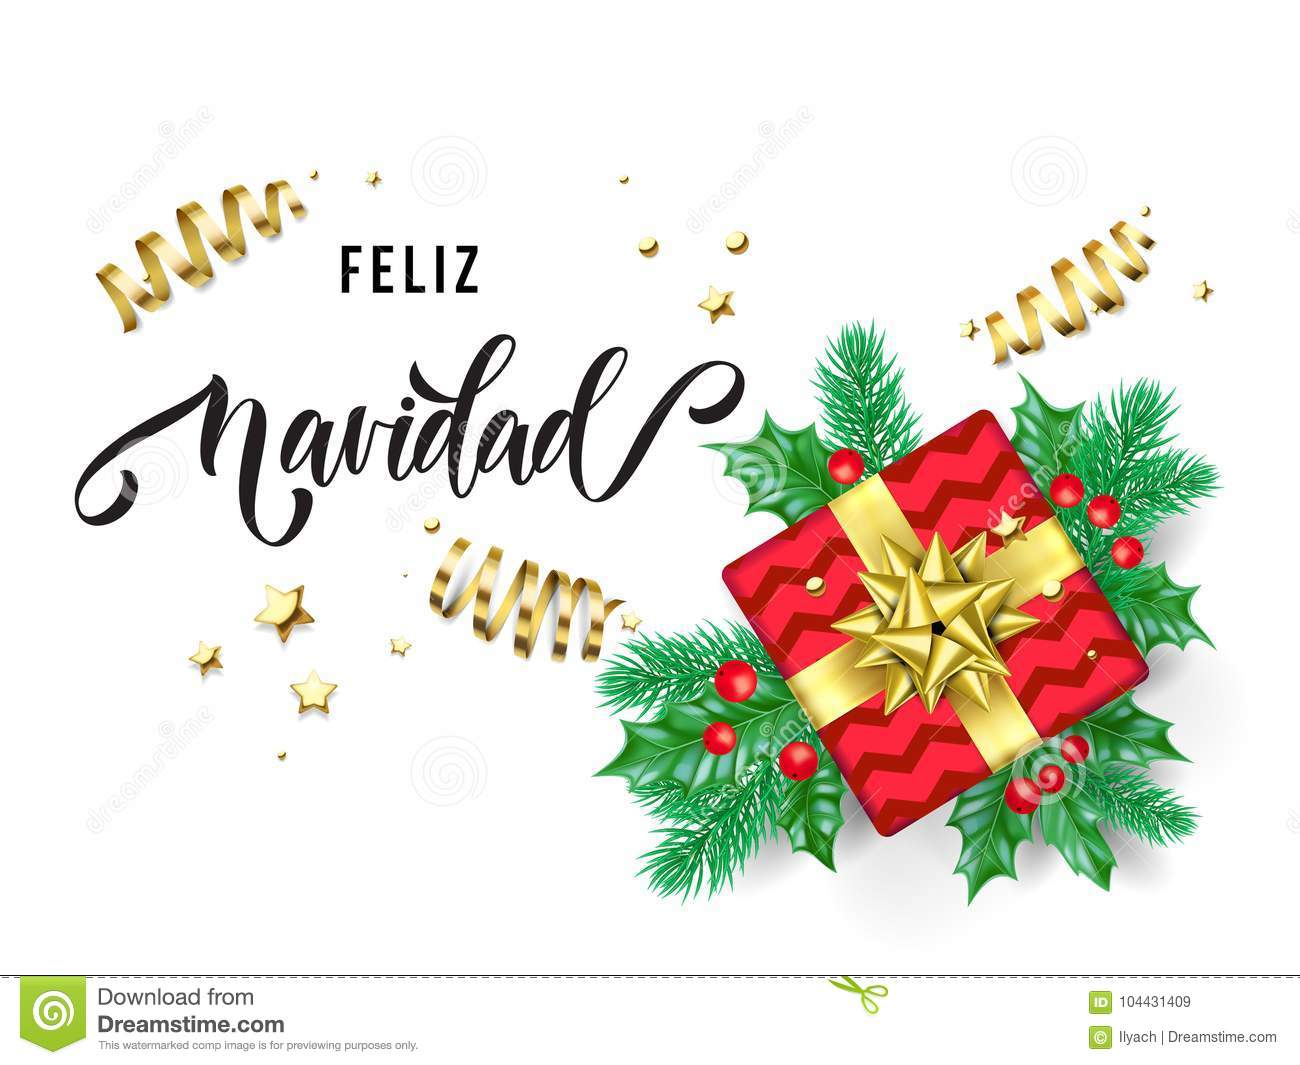 Christmas Spanish.Feliz Navidad Merry Christmas Spanish Trendy Quote